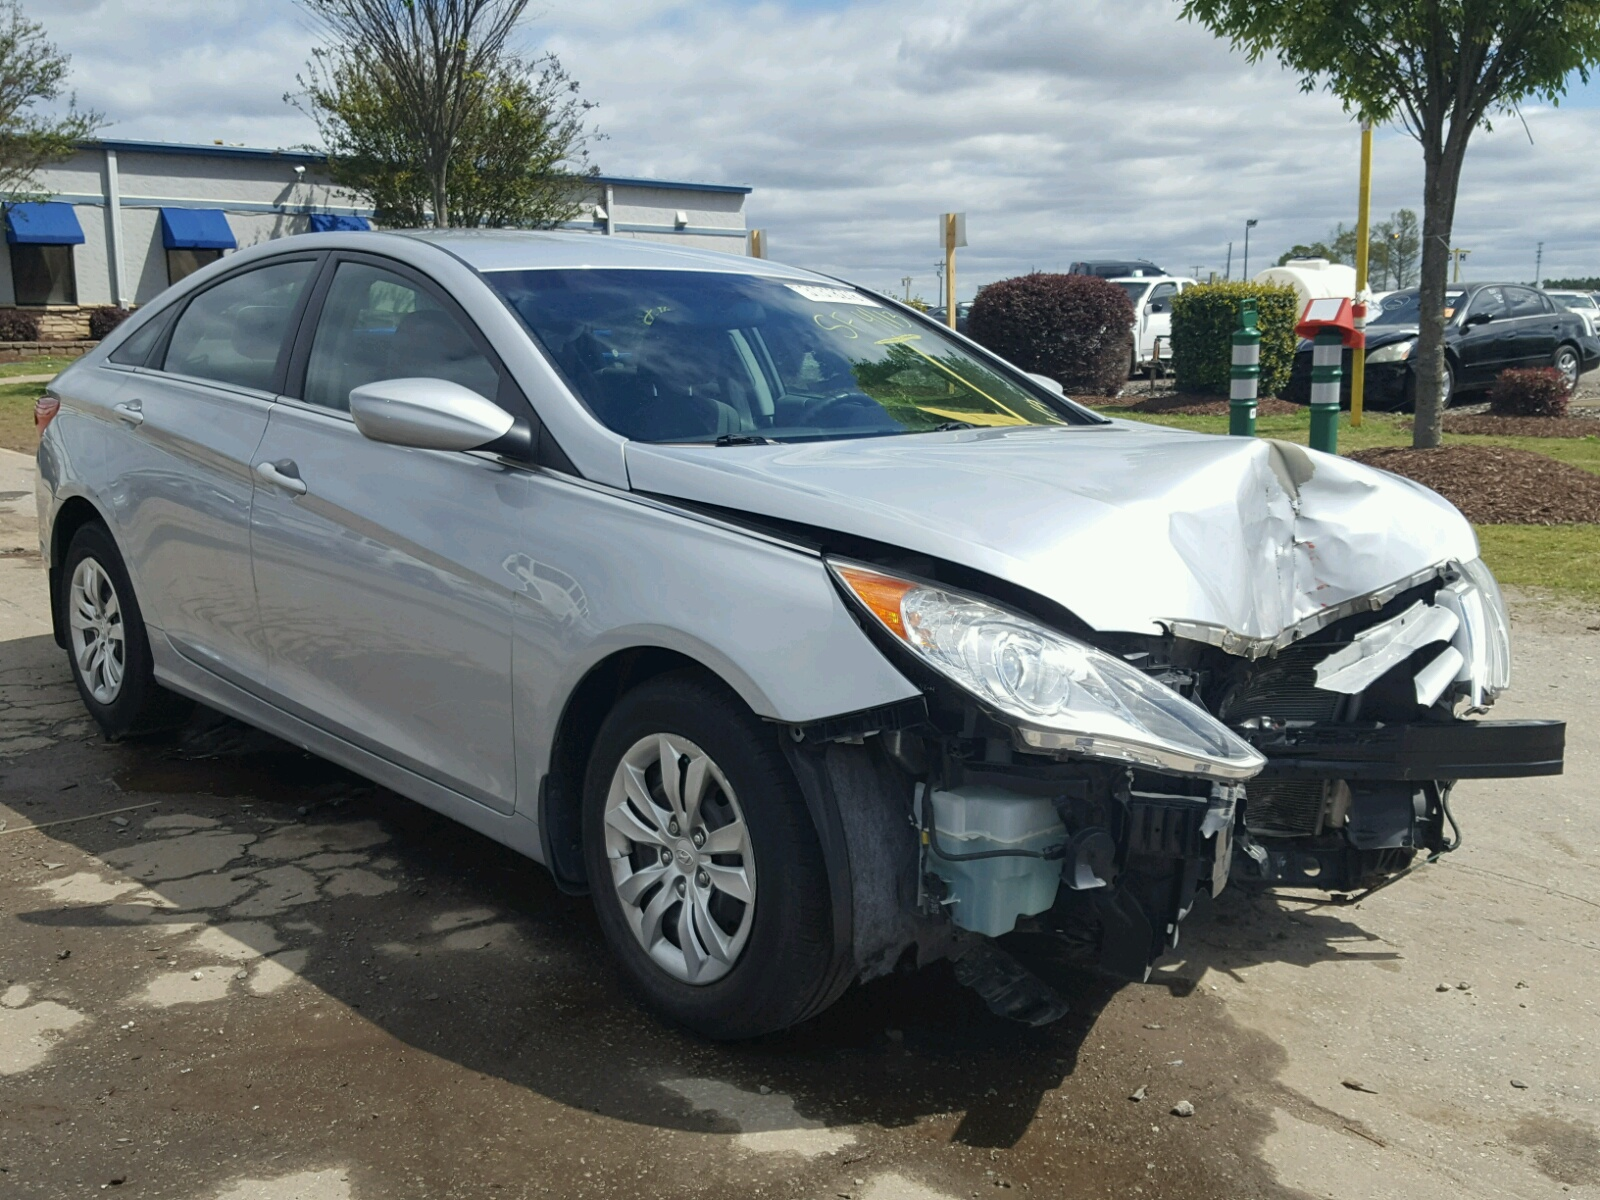 lot carfinder of auctions copart gls hyundai greer title online sc red sale salvage on auto in accent cert en